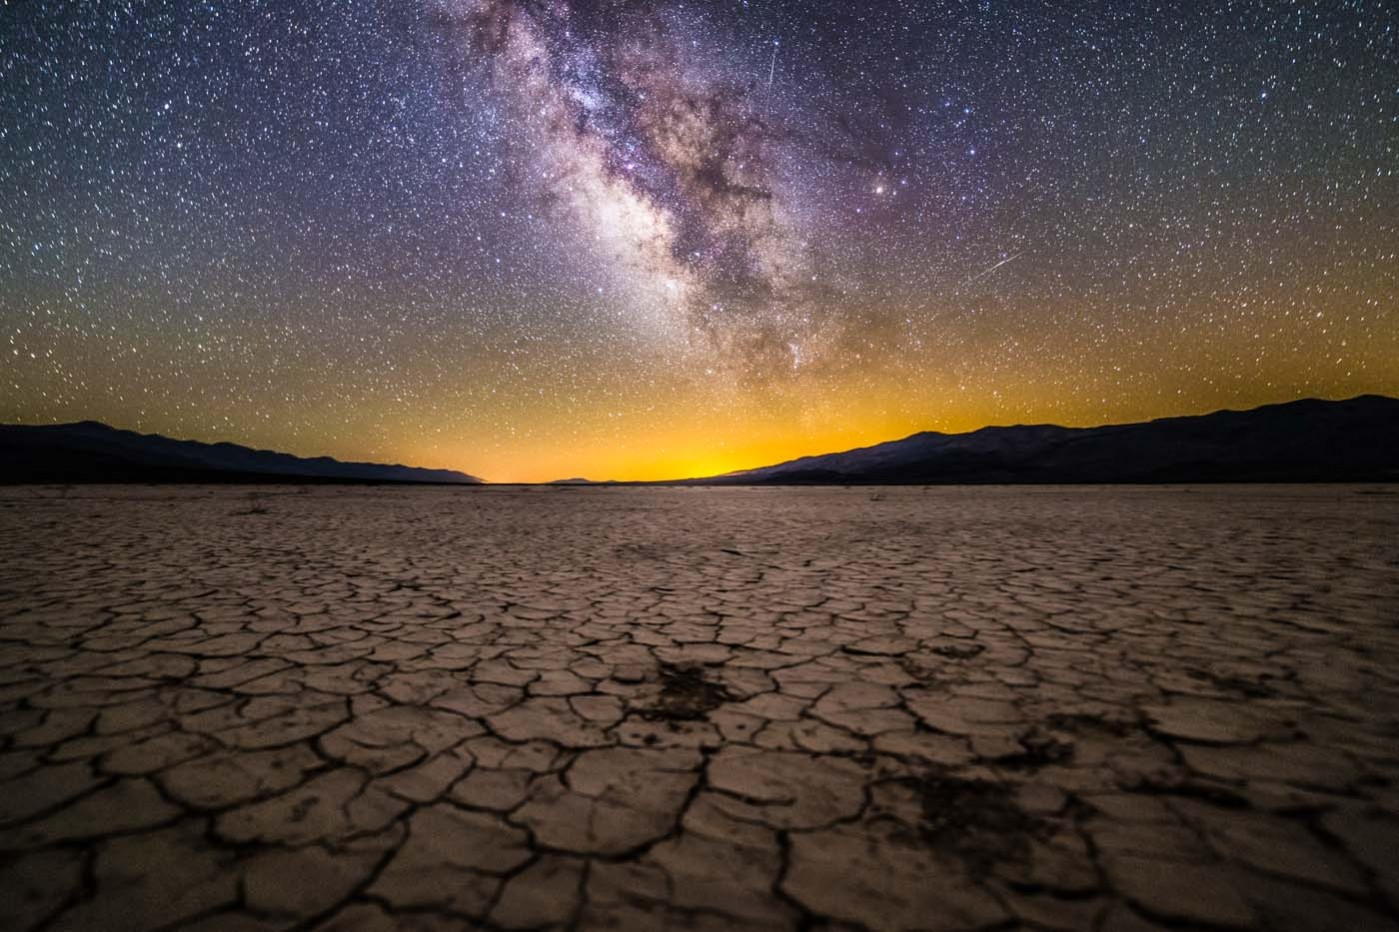 Canon-EOS-6D Milky Way Galactic Center from Death Valley